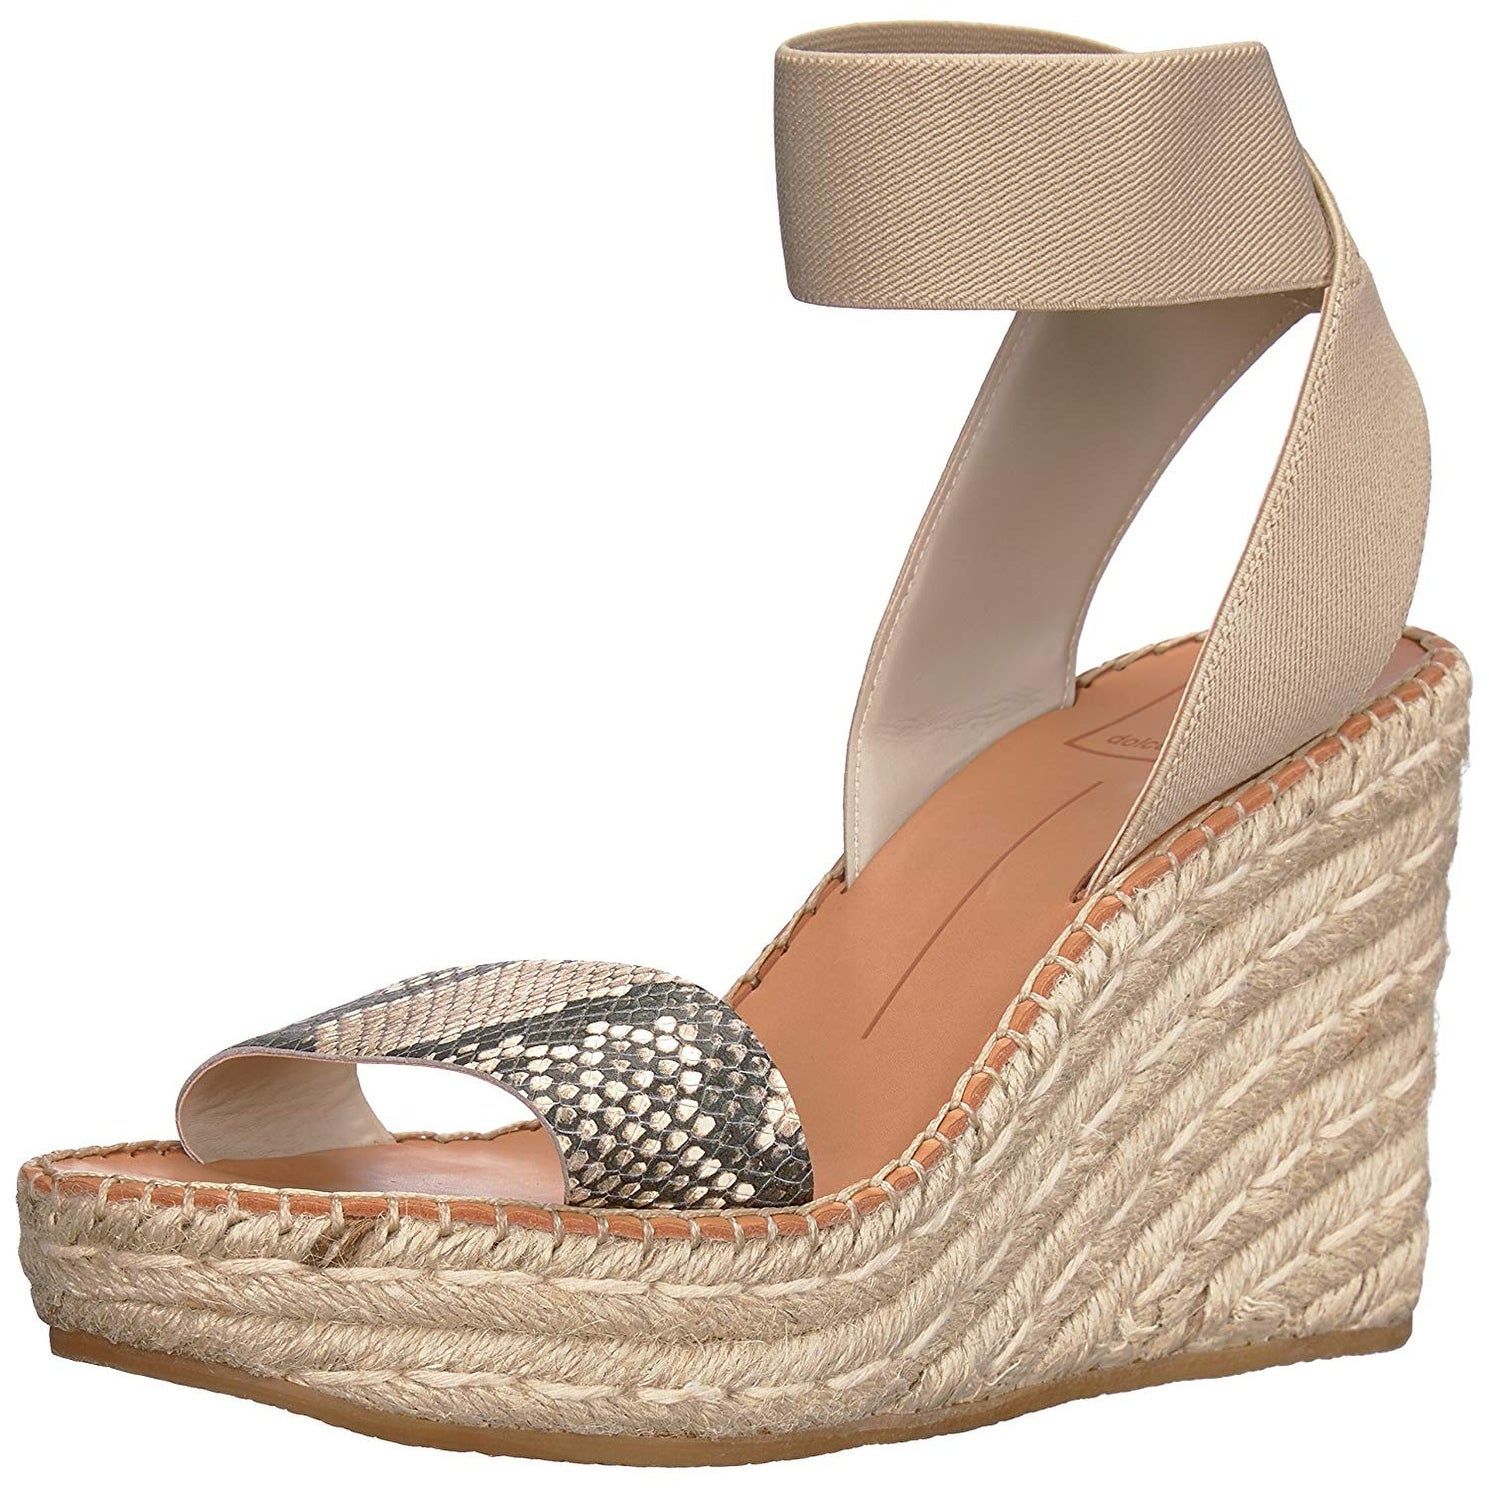 e452fff6220 Shop Dolce Vita Women s Pavlin Wedge Sandal - Free Shipping Today -  Overstock - 22362505